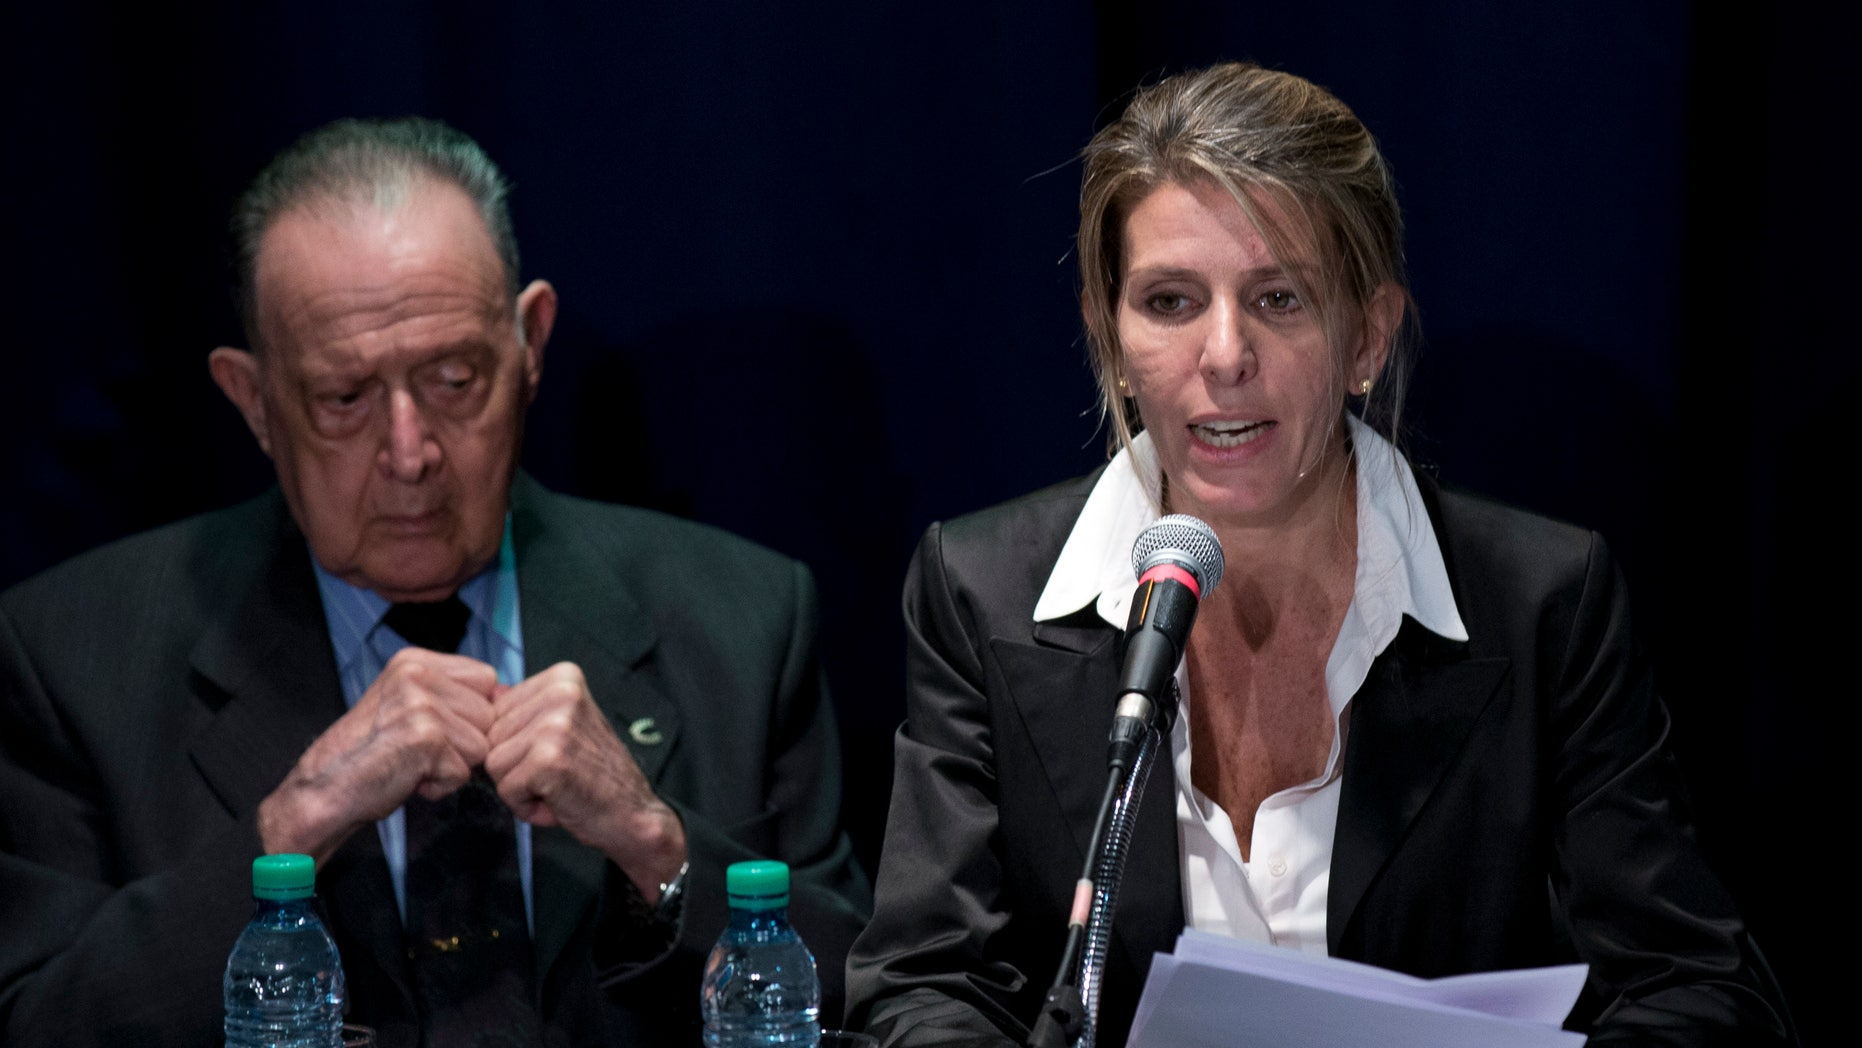 Sandra Arroyo Salgado and forensic doctor Osvaldo Raffo, in Buenos Aires, Argentina, Thursday, March 5, 2015.